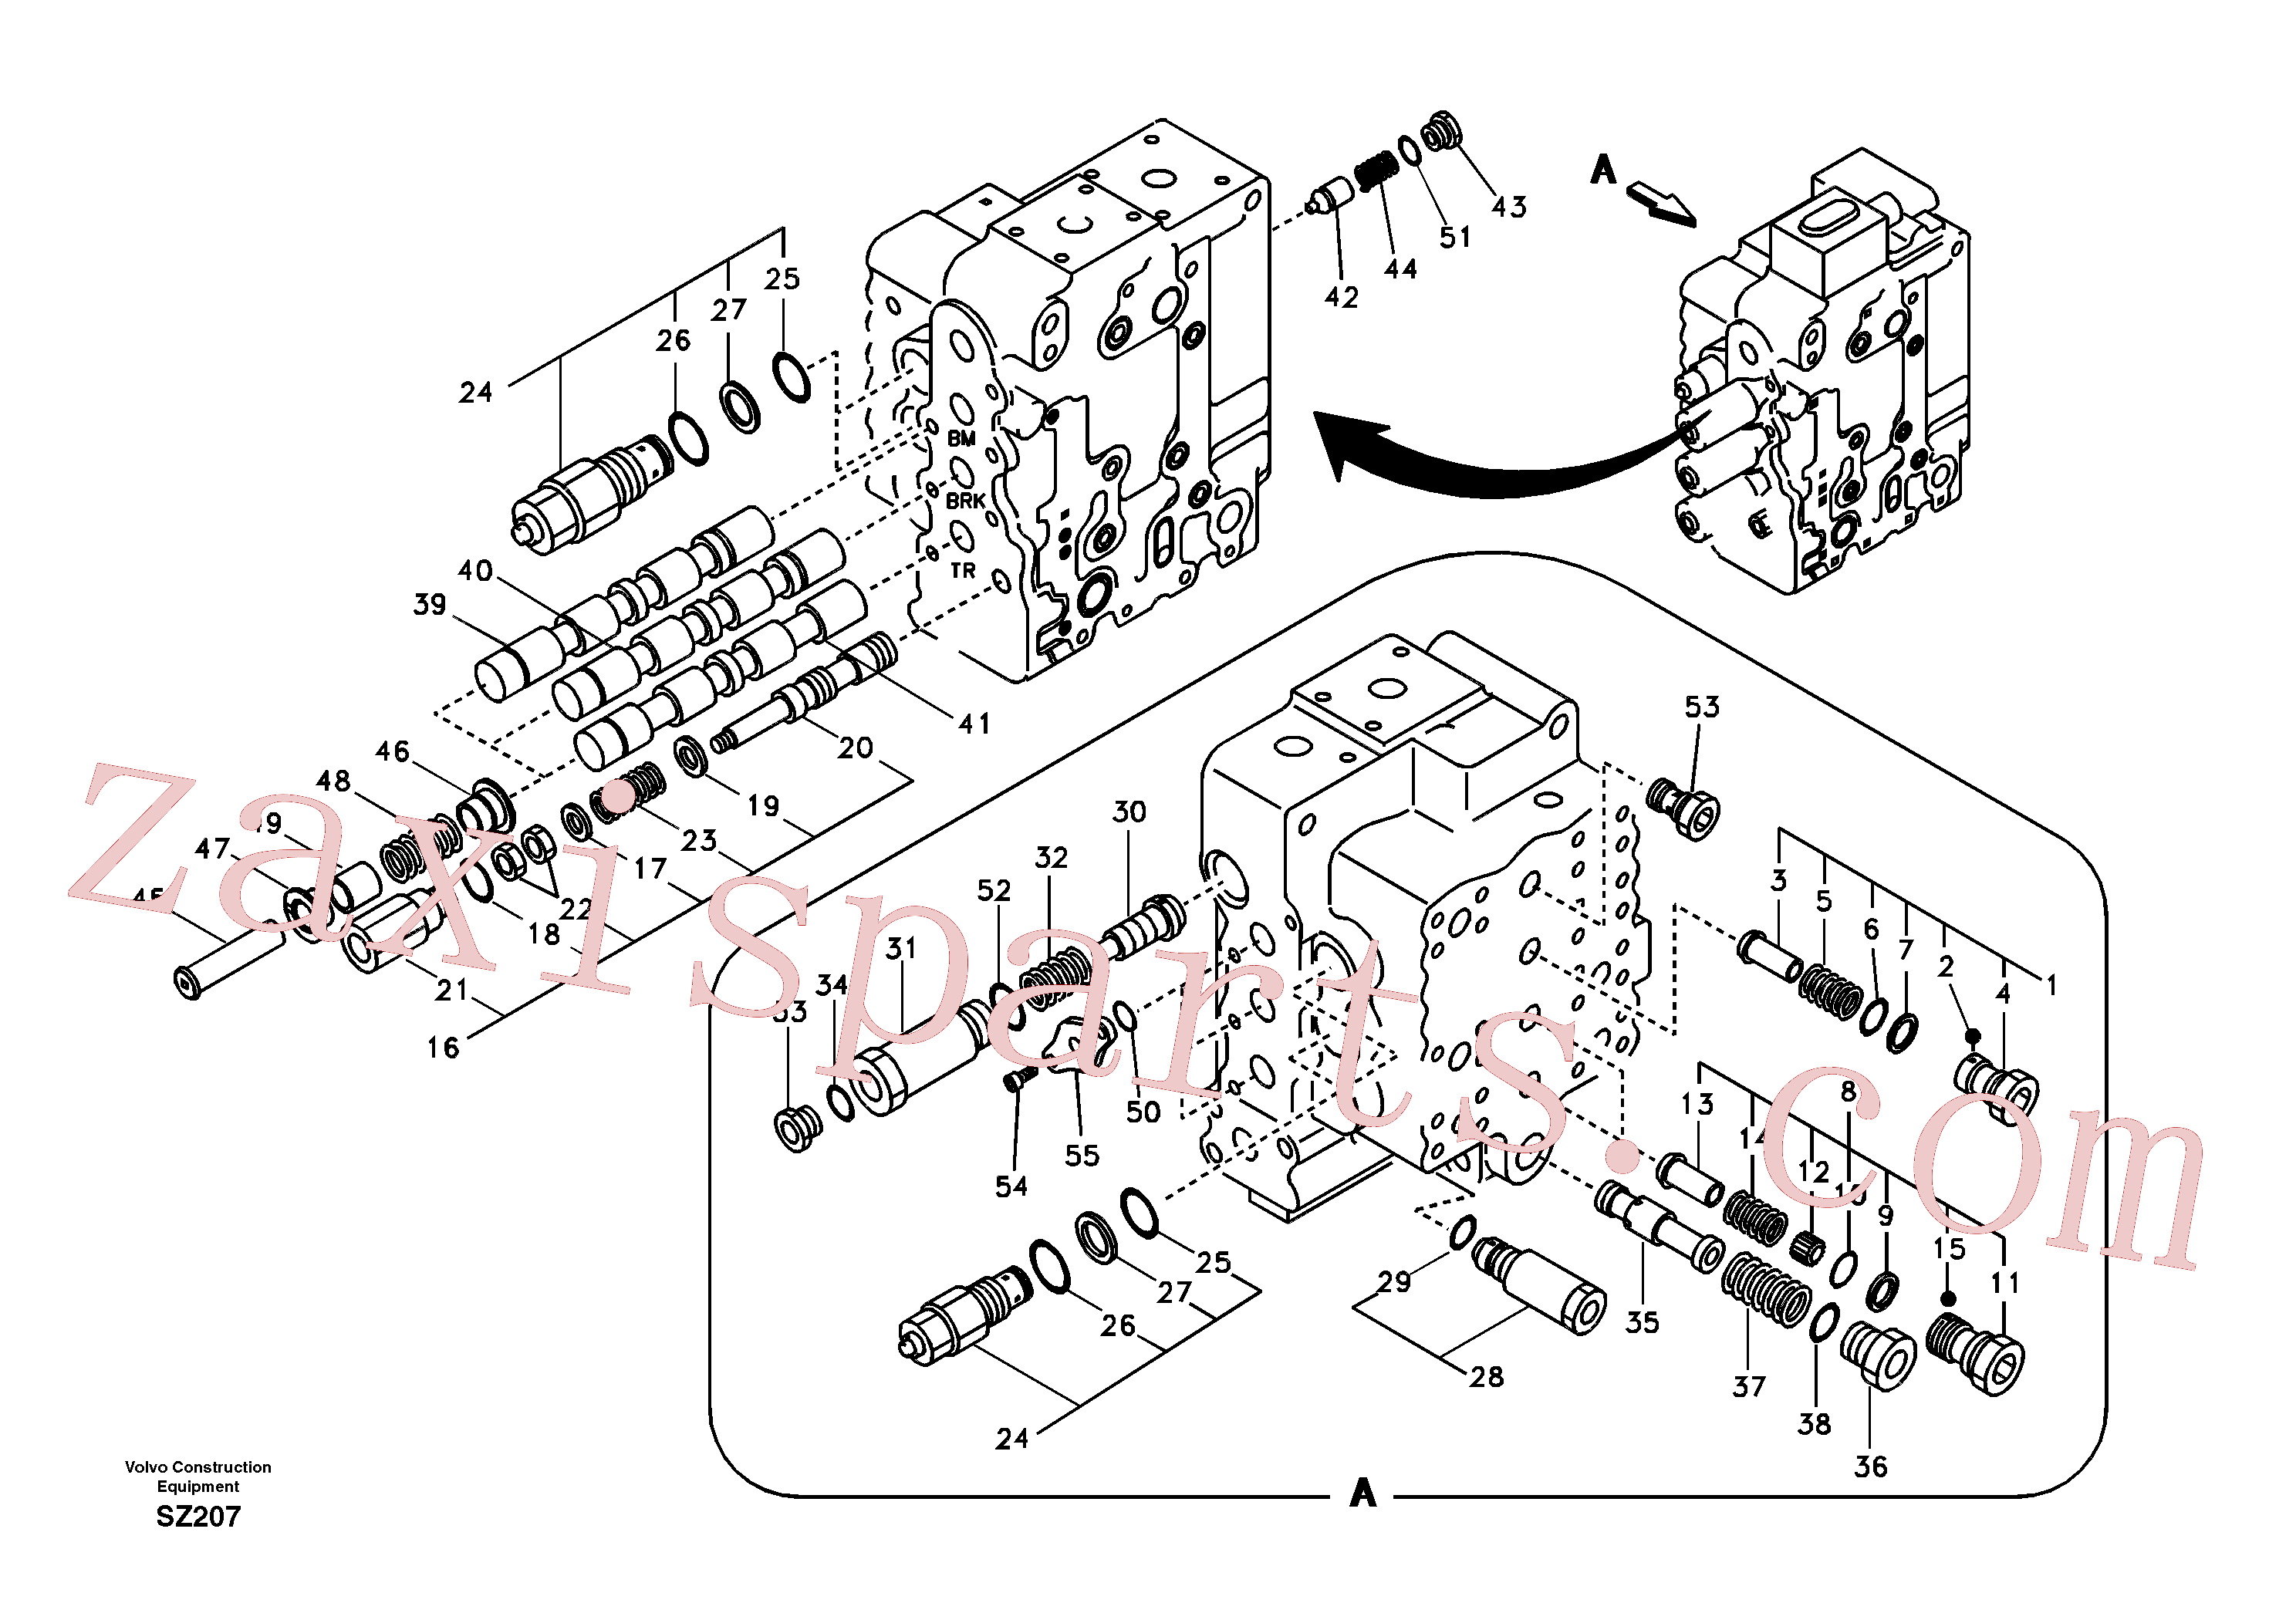 SA7272-03121 for Volvo Main control valve, boom and bucket and travel Rh(SZ207 assembly)